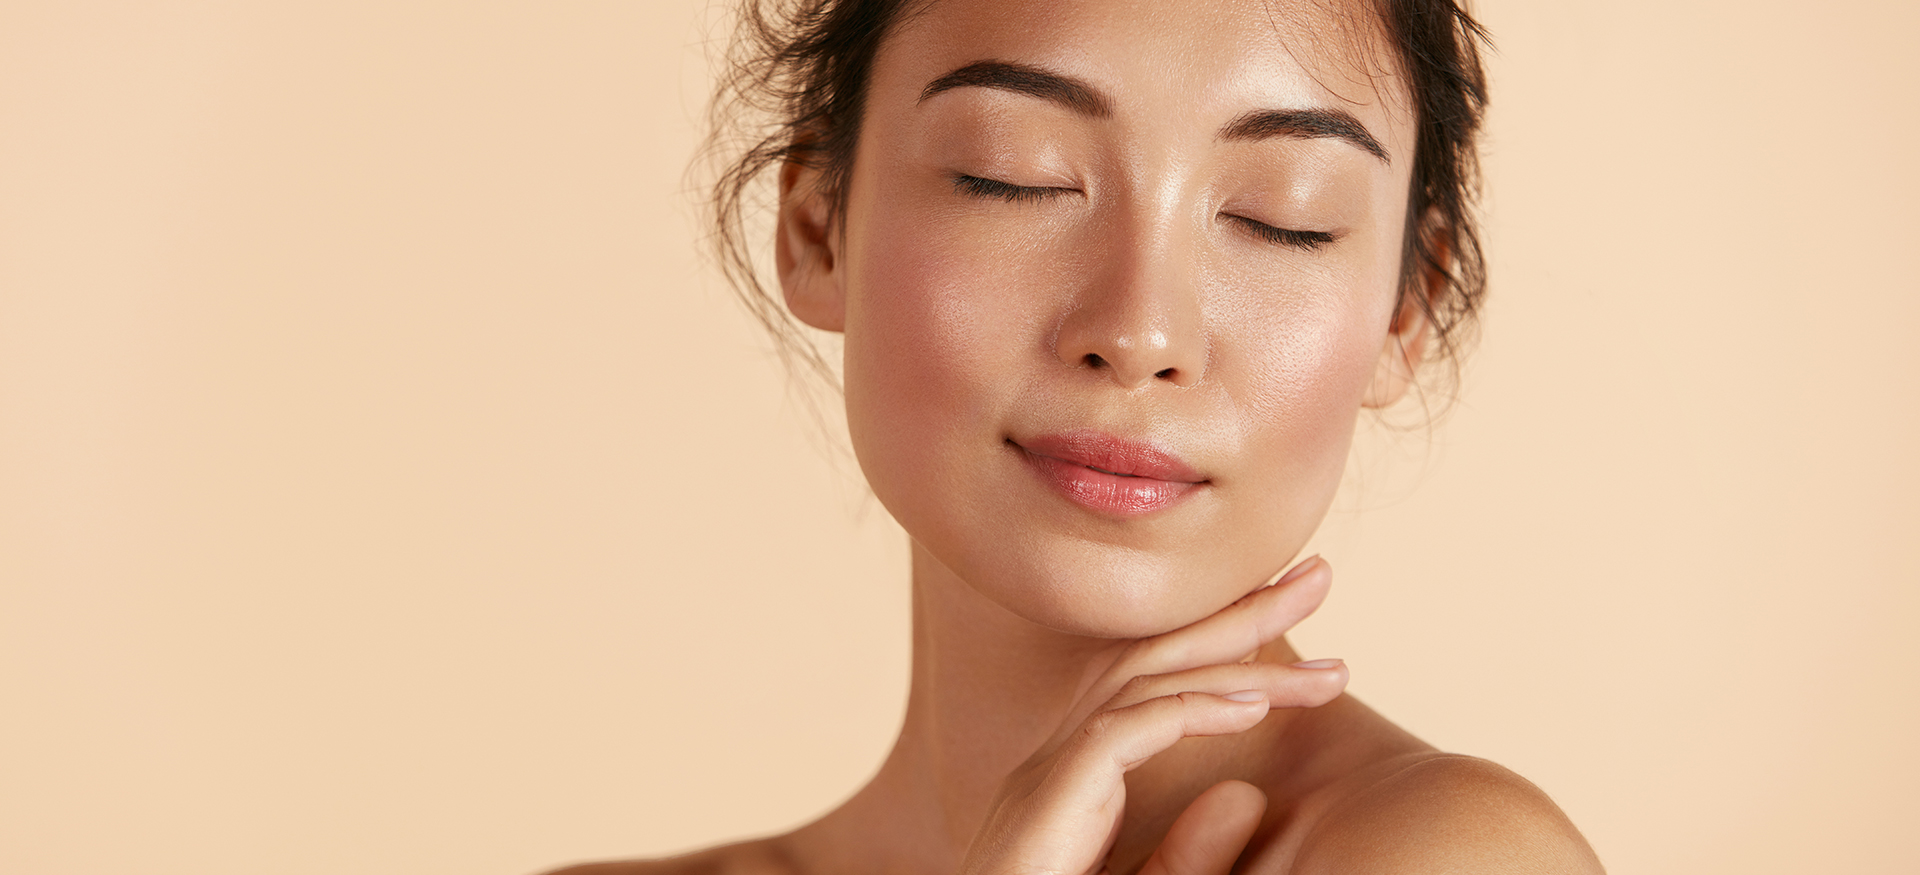 Get That Glow Back! Brighten Up Your Dull Skin